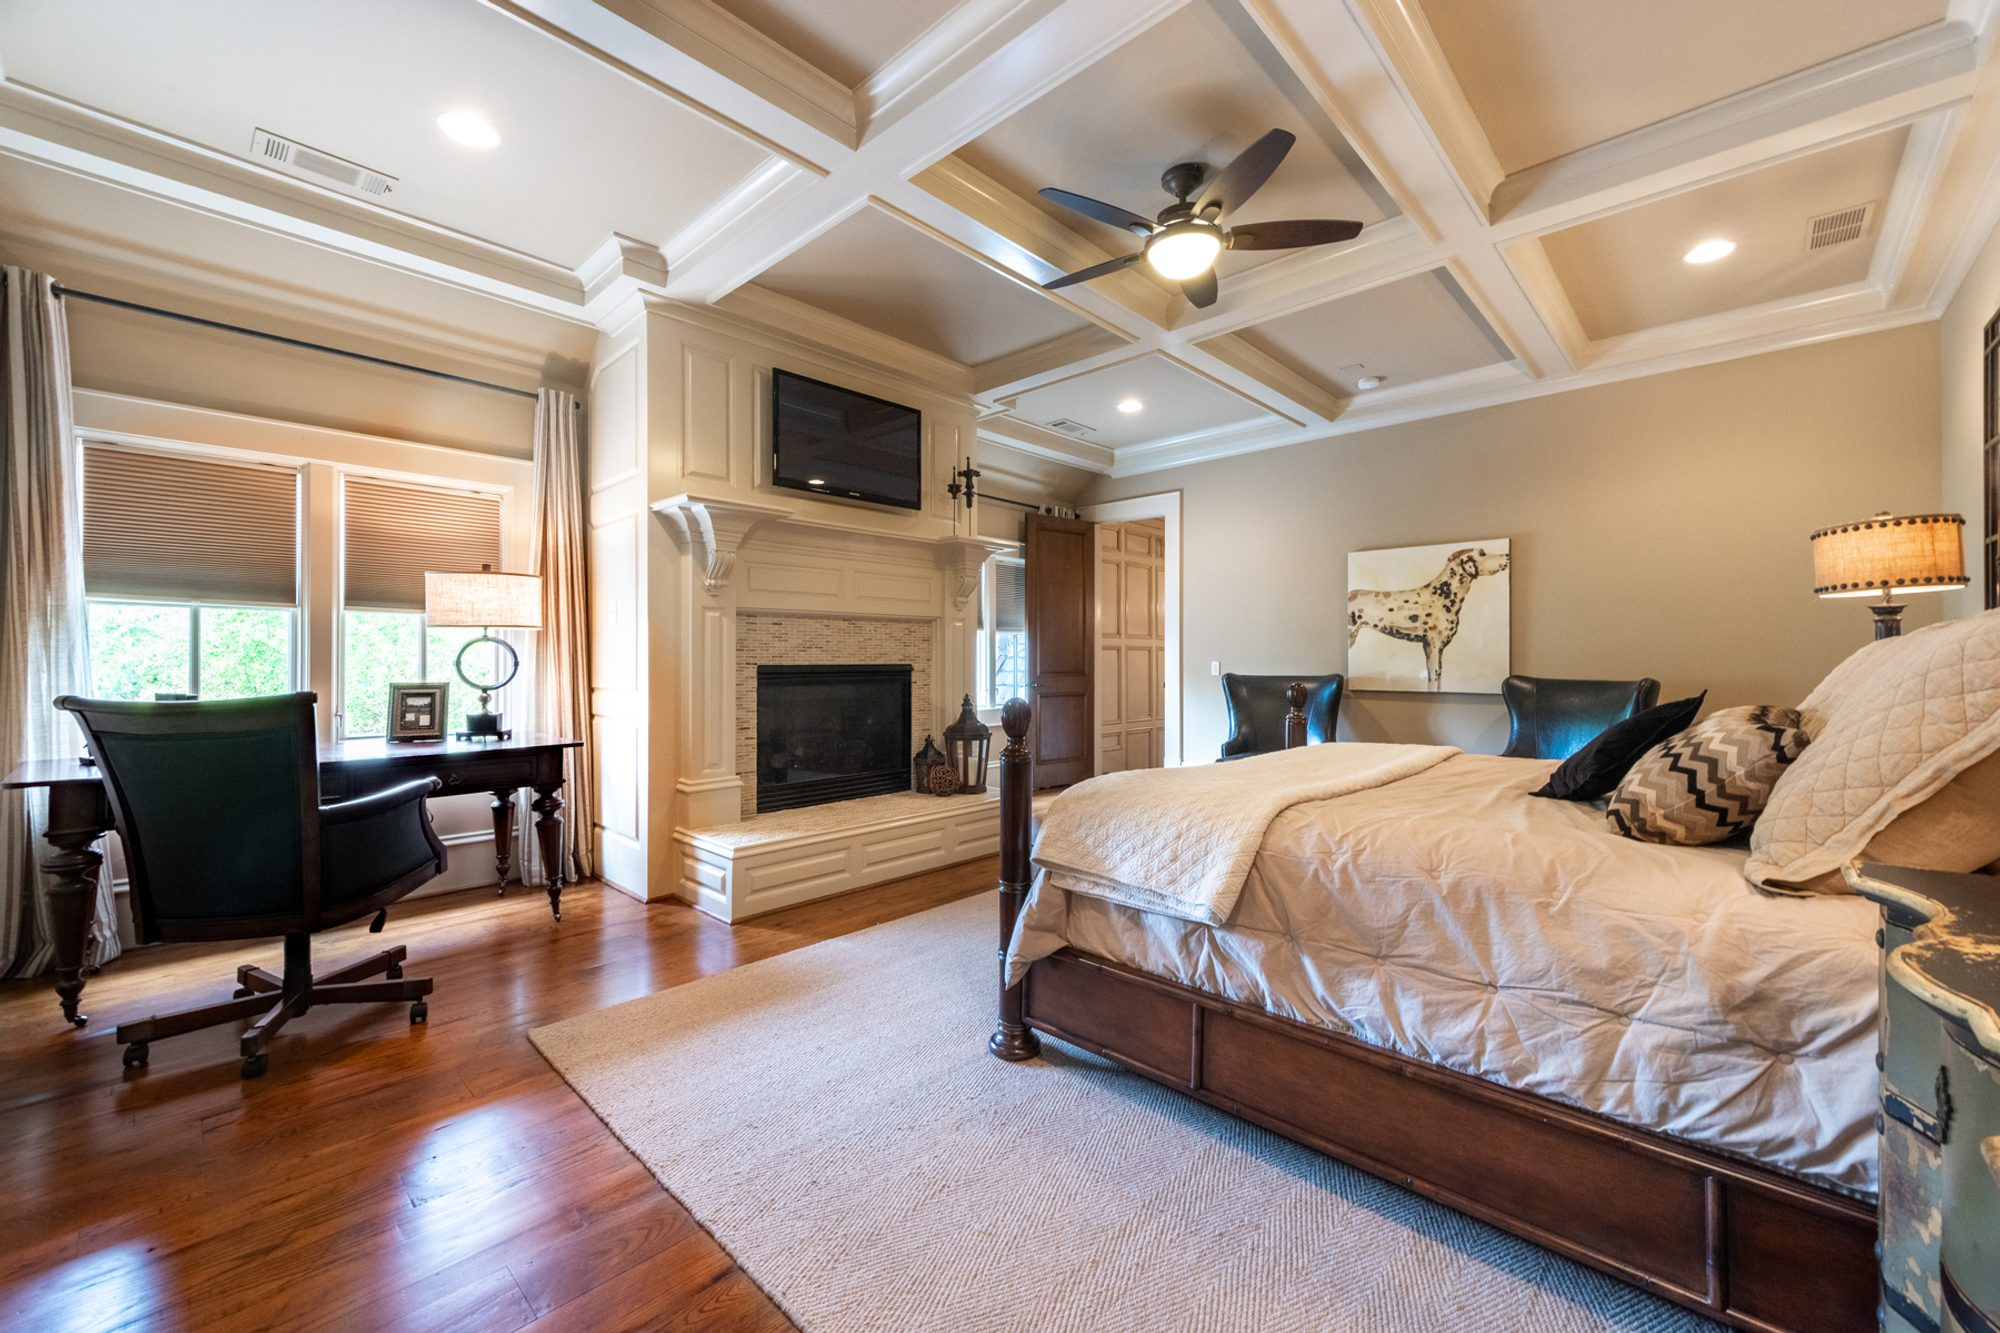 Master bedroom with built in gas fireplace and beautiful custom built wall paneling surround, stone tiles and mantle.